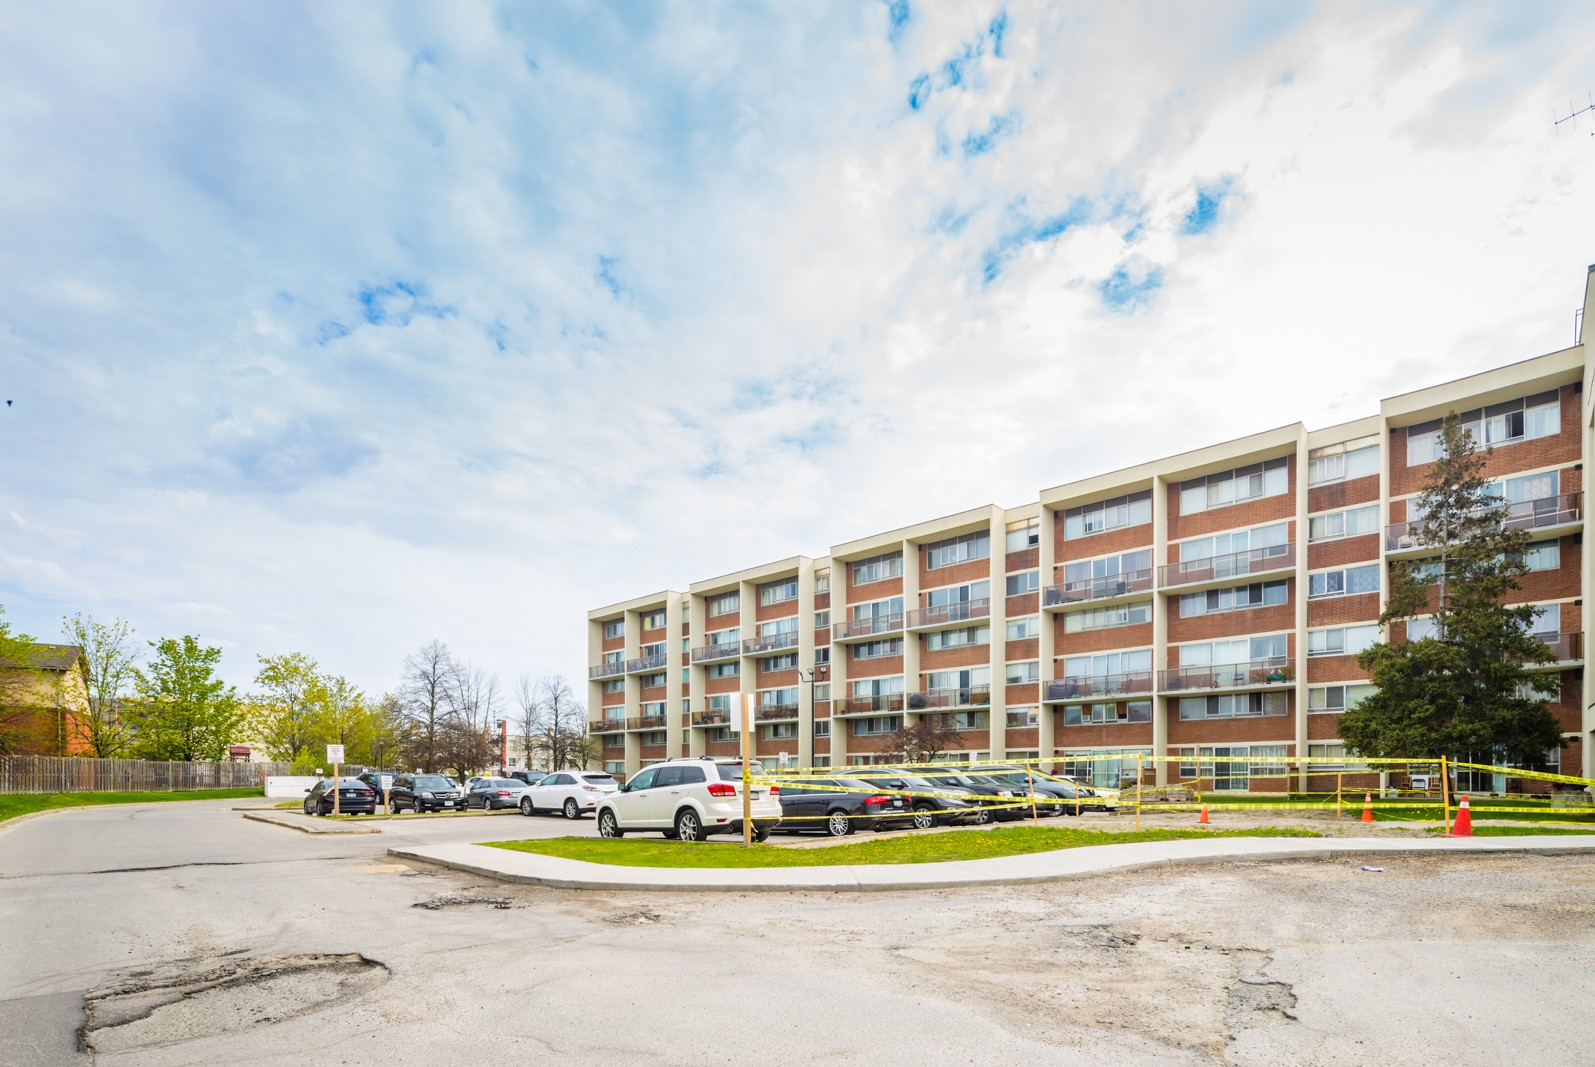 Stainton Drive Condos at 1050 Stainton Dr, Mississauga 1